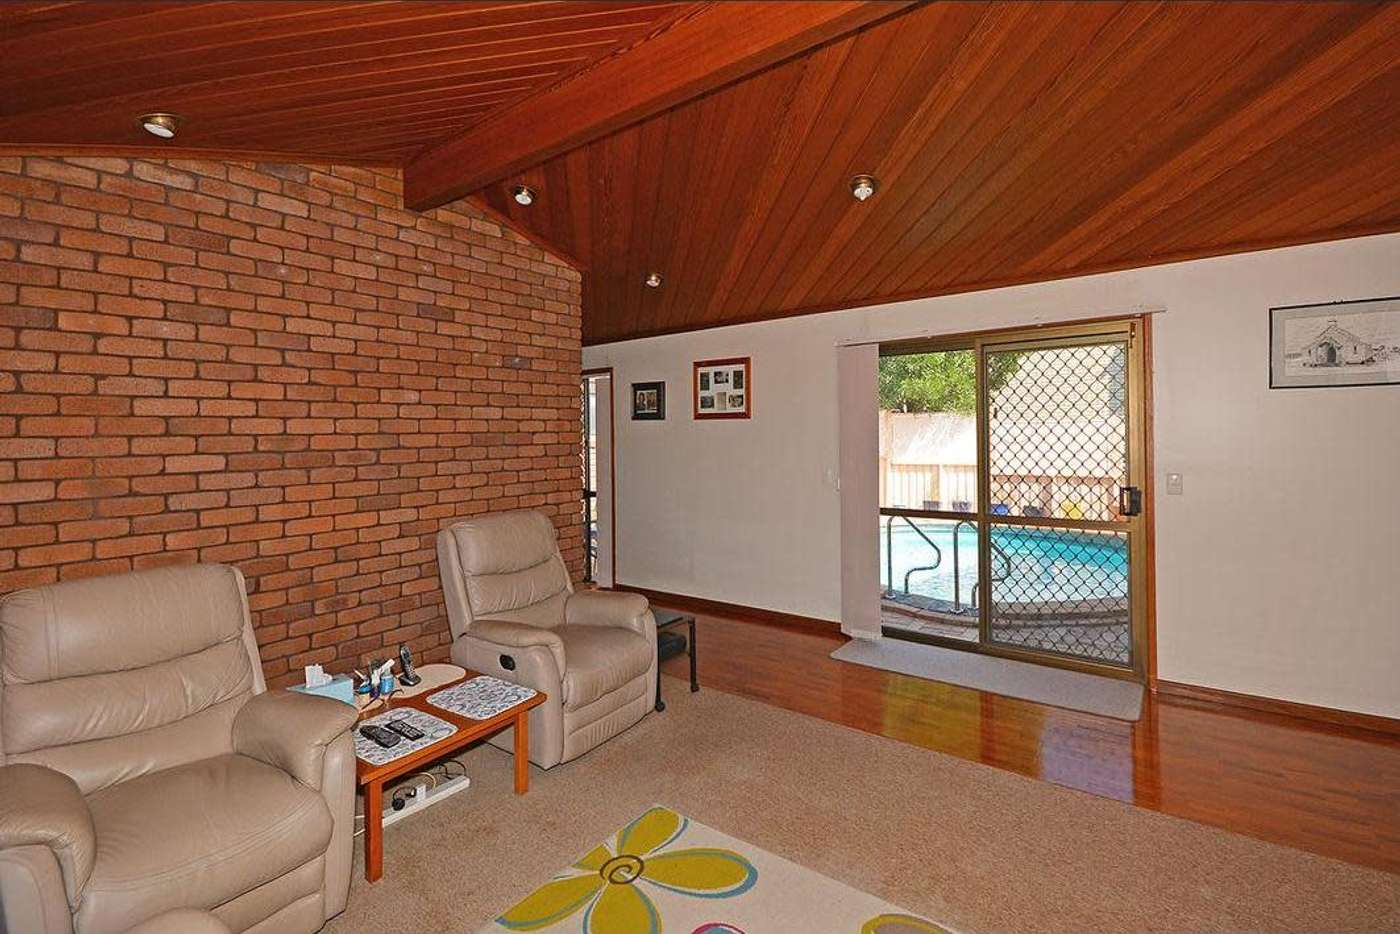 Seventh view of Homely house listing, 71 Hillcrest Avenue, Scarness QLD 4655